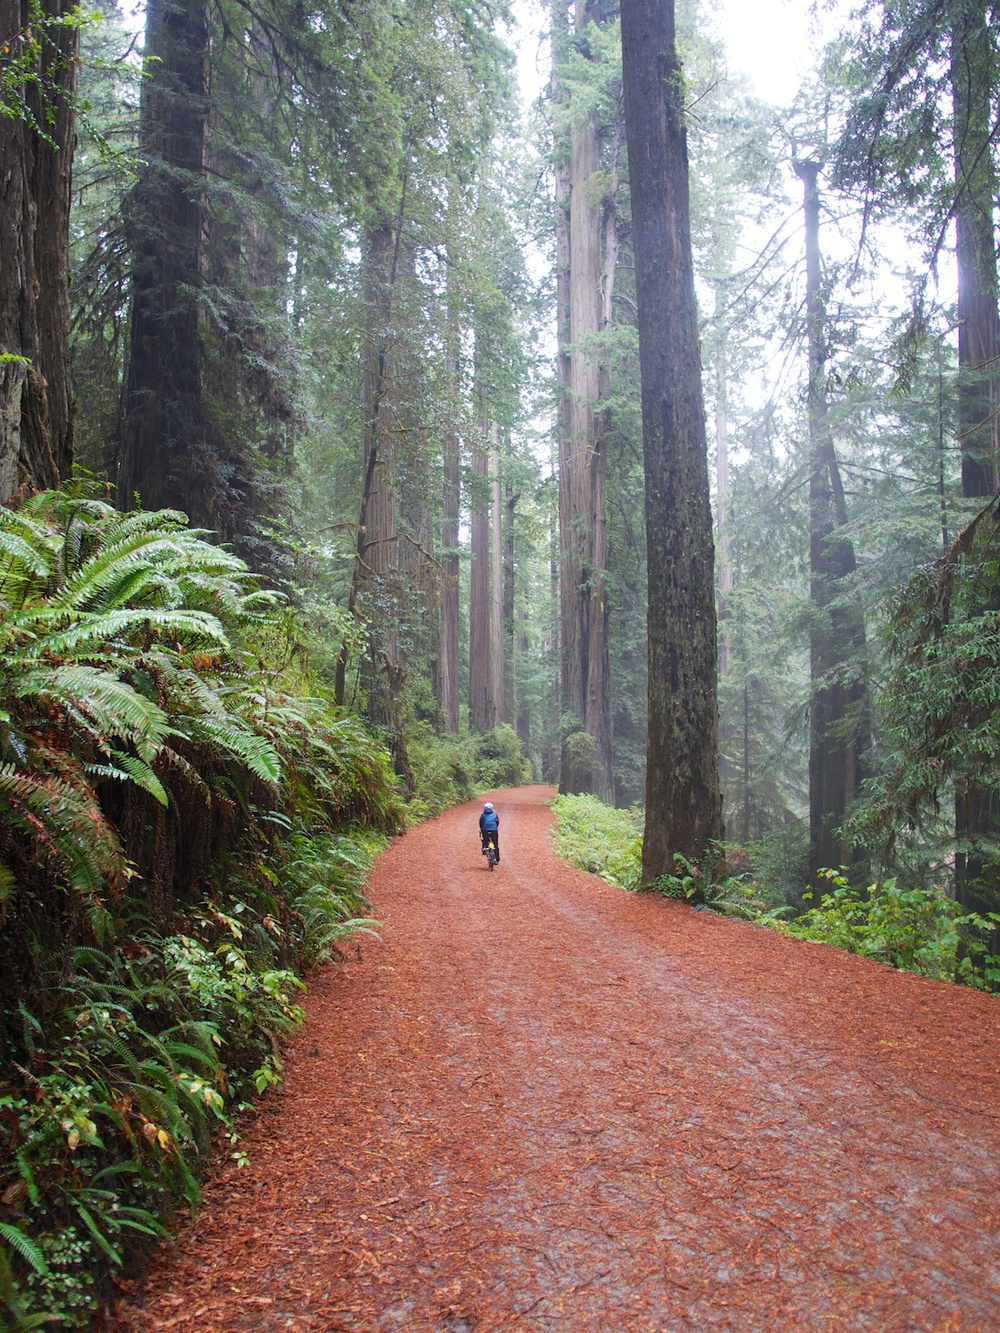 Biking bliss through the amazing redwood forests.